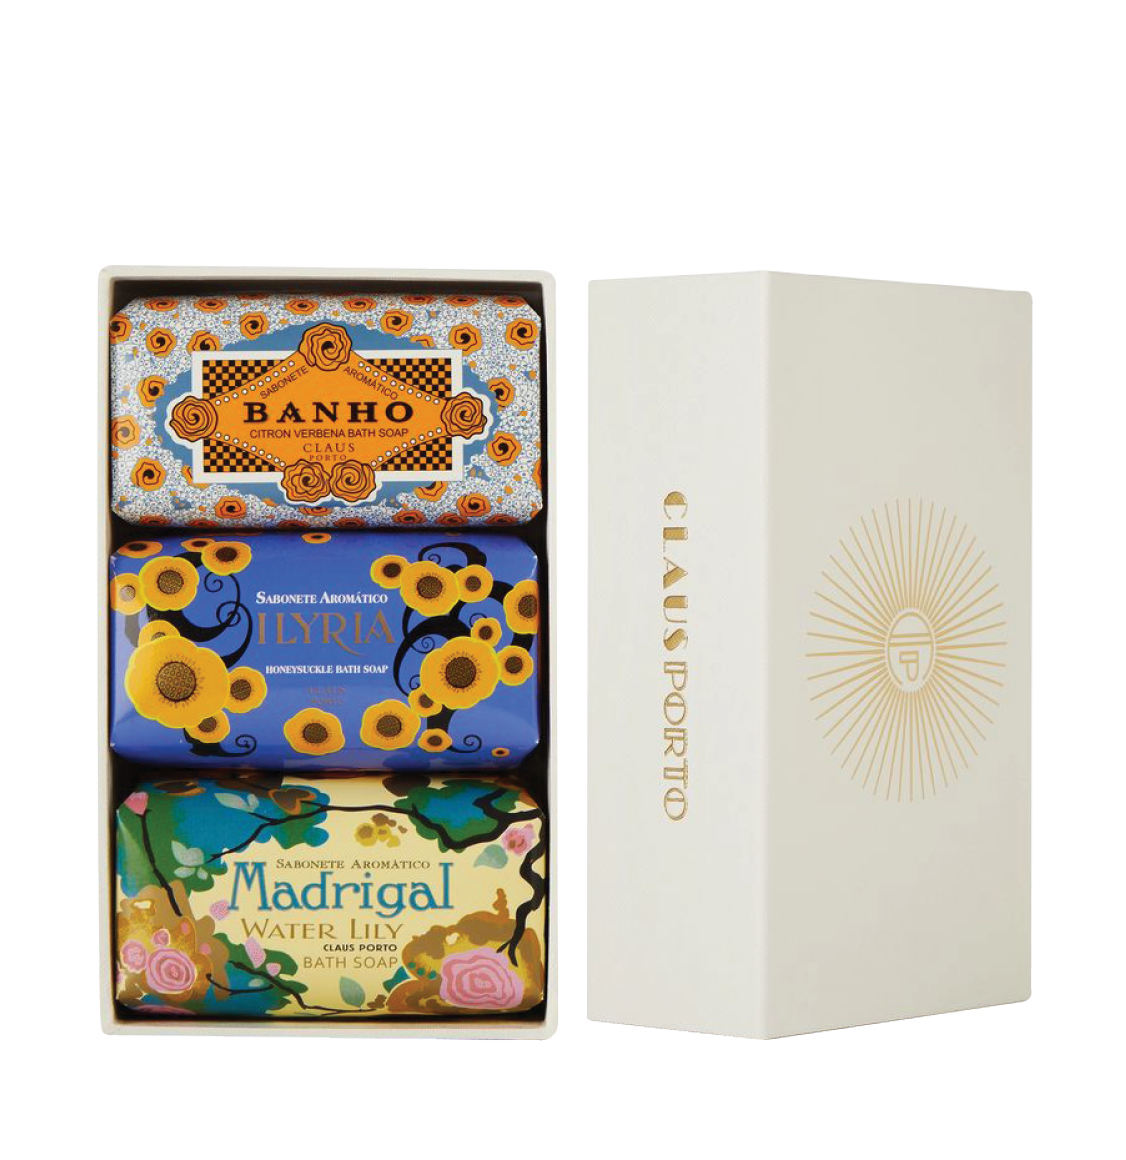 Claus Porto Gift Box Deco Three Soaps